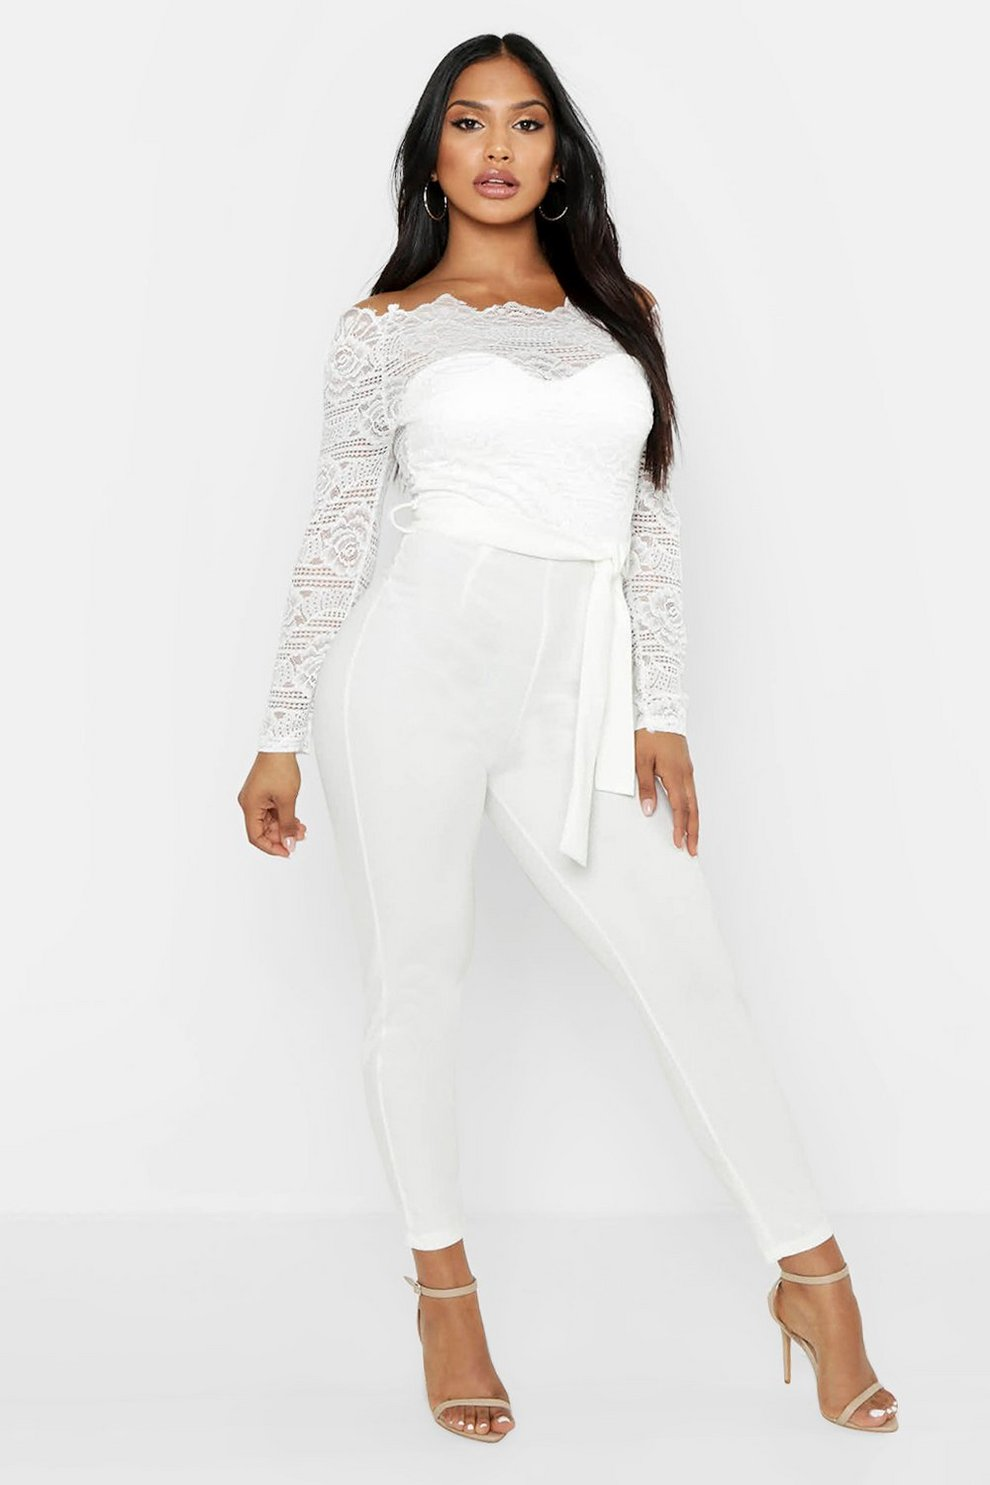 new product a75bc 21f25 Schulterfreier 2-in-1 Jumpsuit aus Spitze